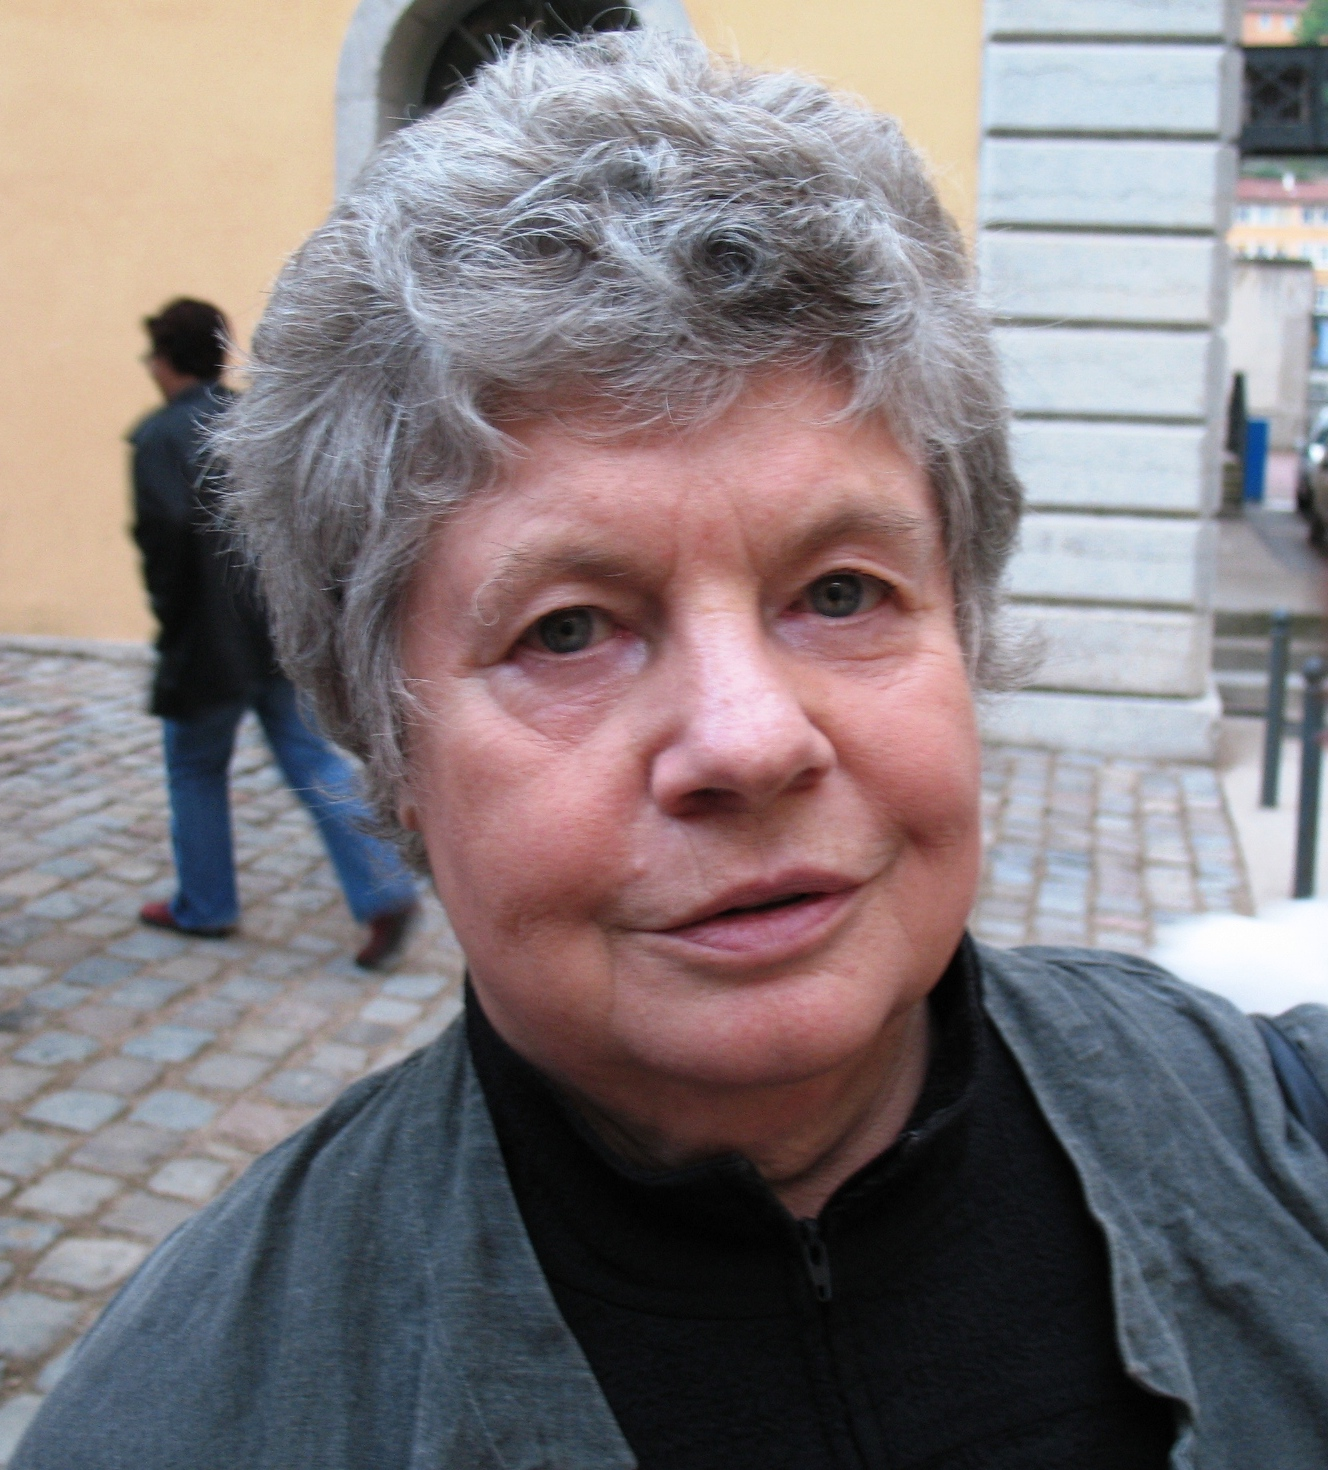 a s byatt A s byatt is the author of numerous novels, including the quartet the virgin in the garden, still life, babel tower and a whistling woman the biographer's tale and possession, which was awarded the booker prize.